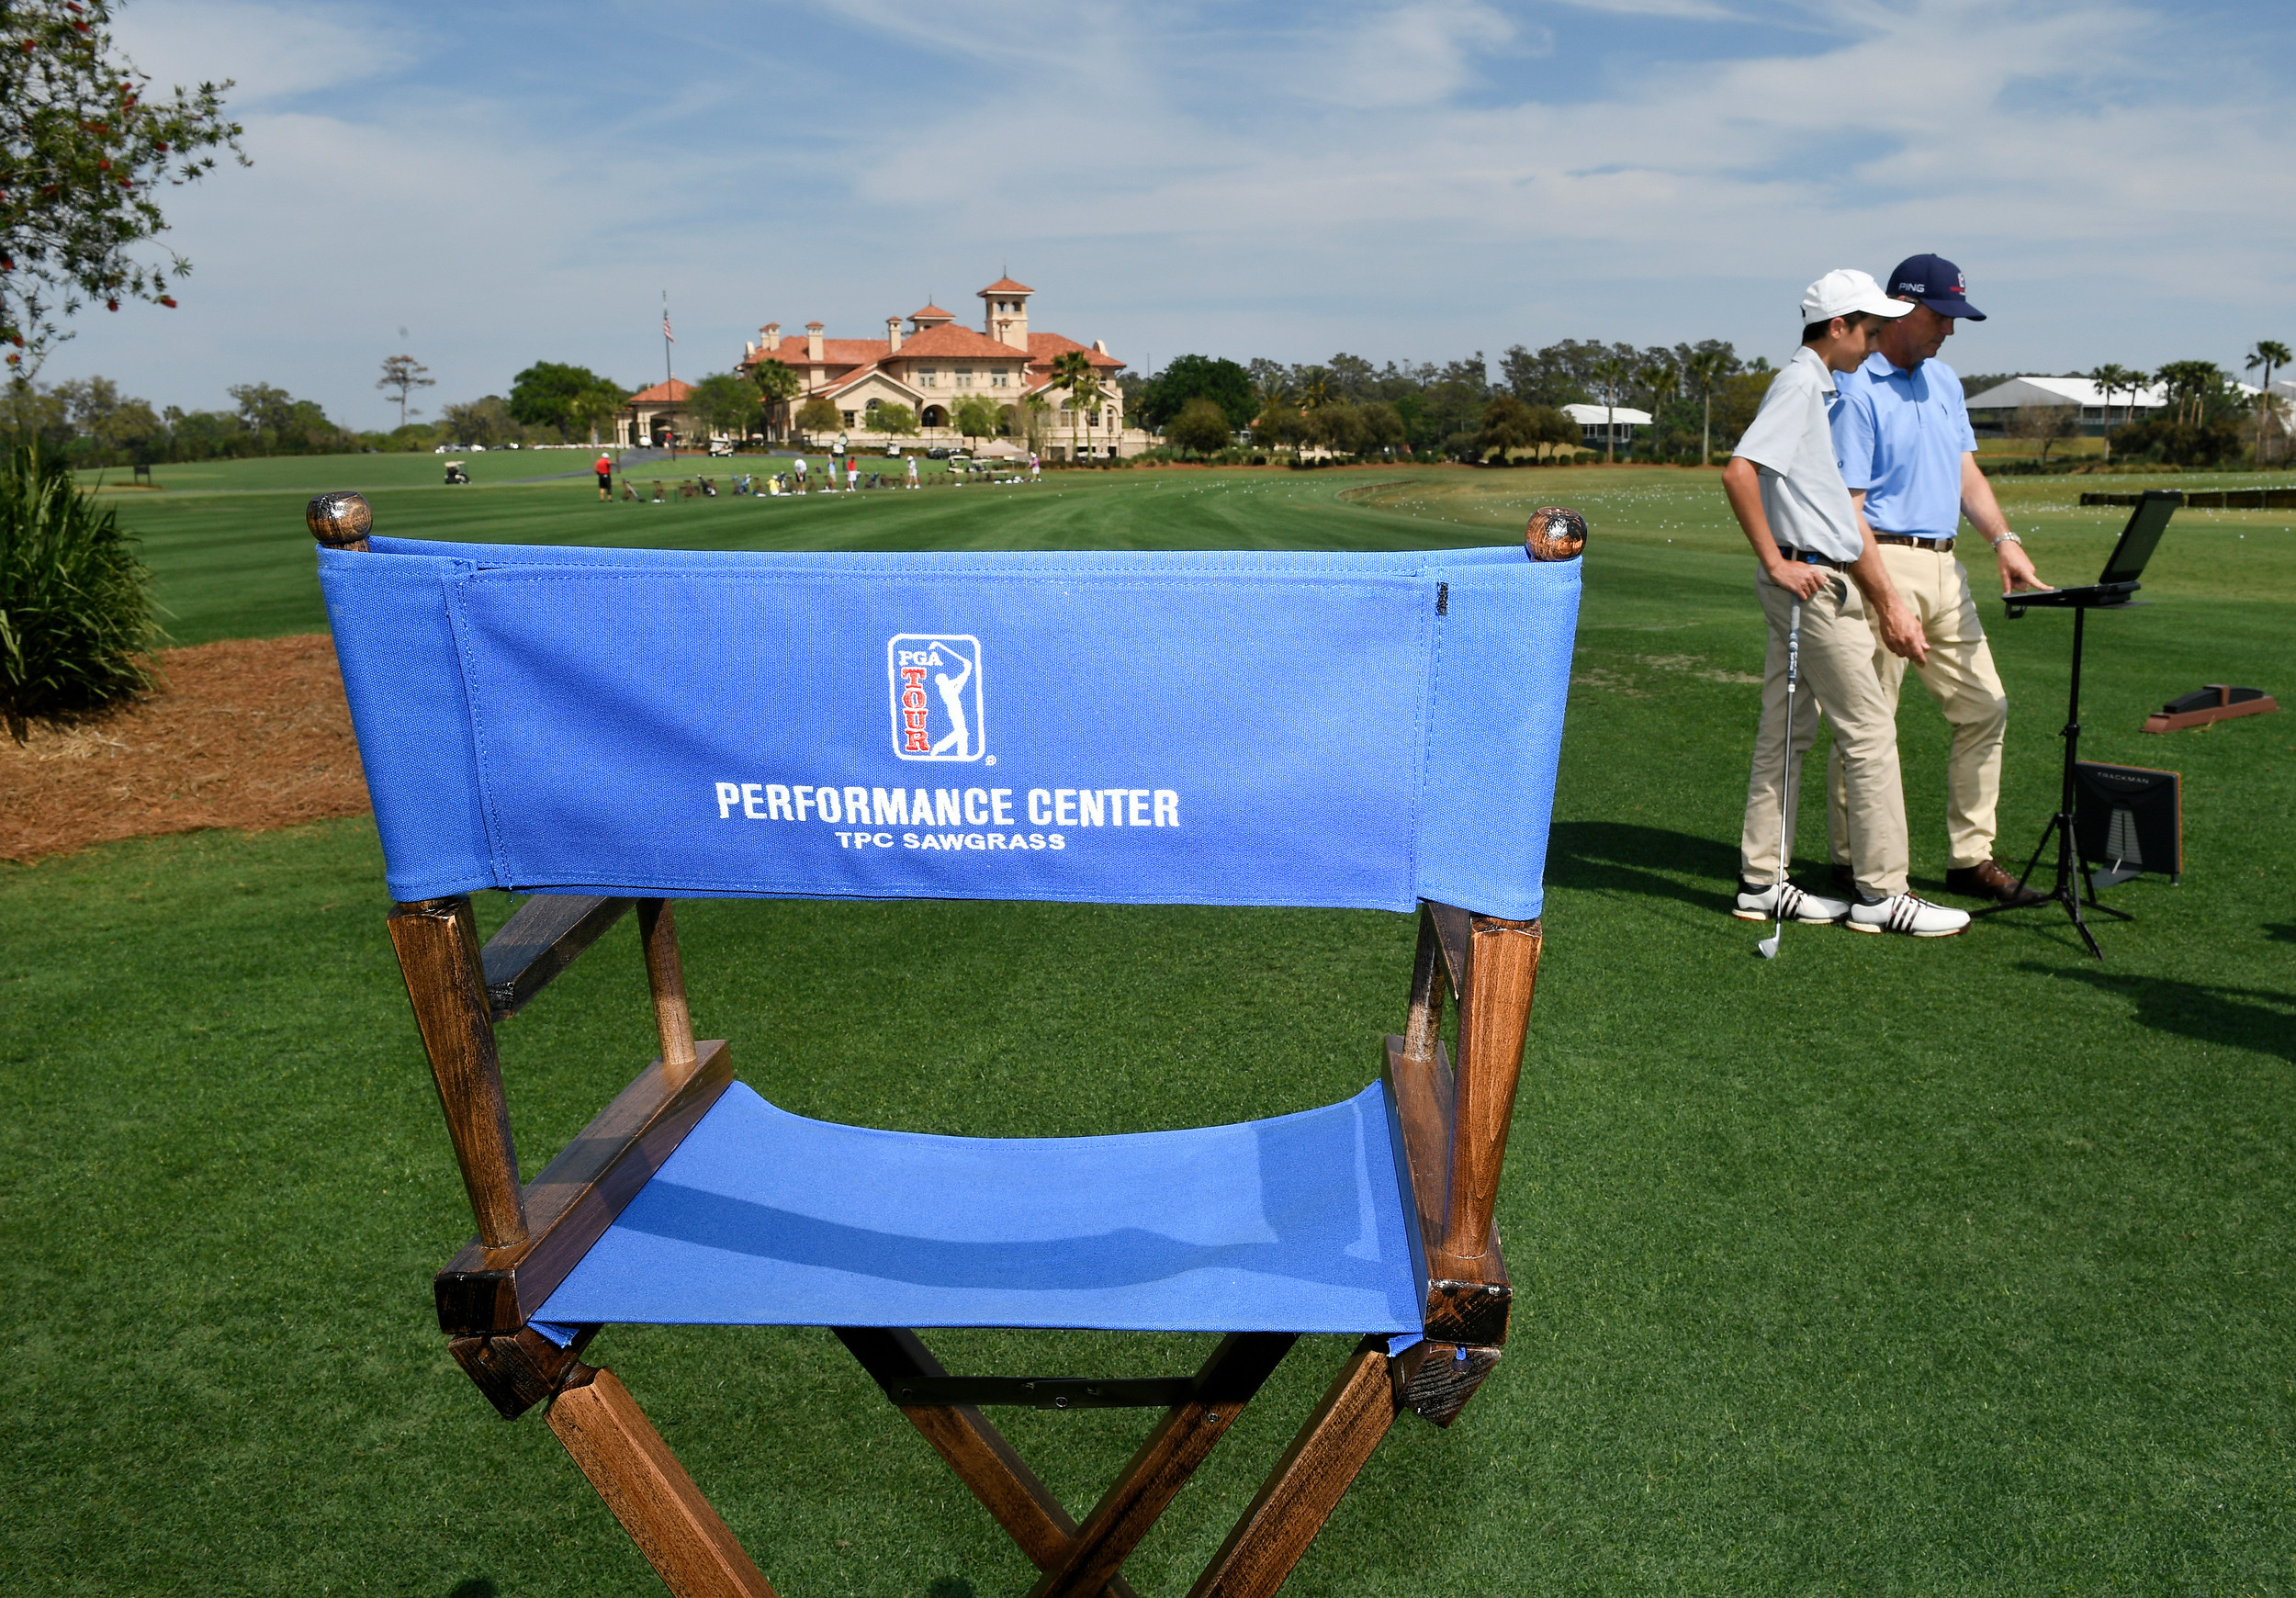 The performance center is available for golfers of varying ages and skill levels.